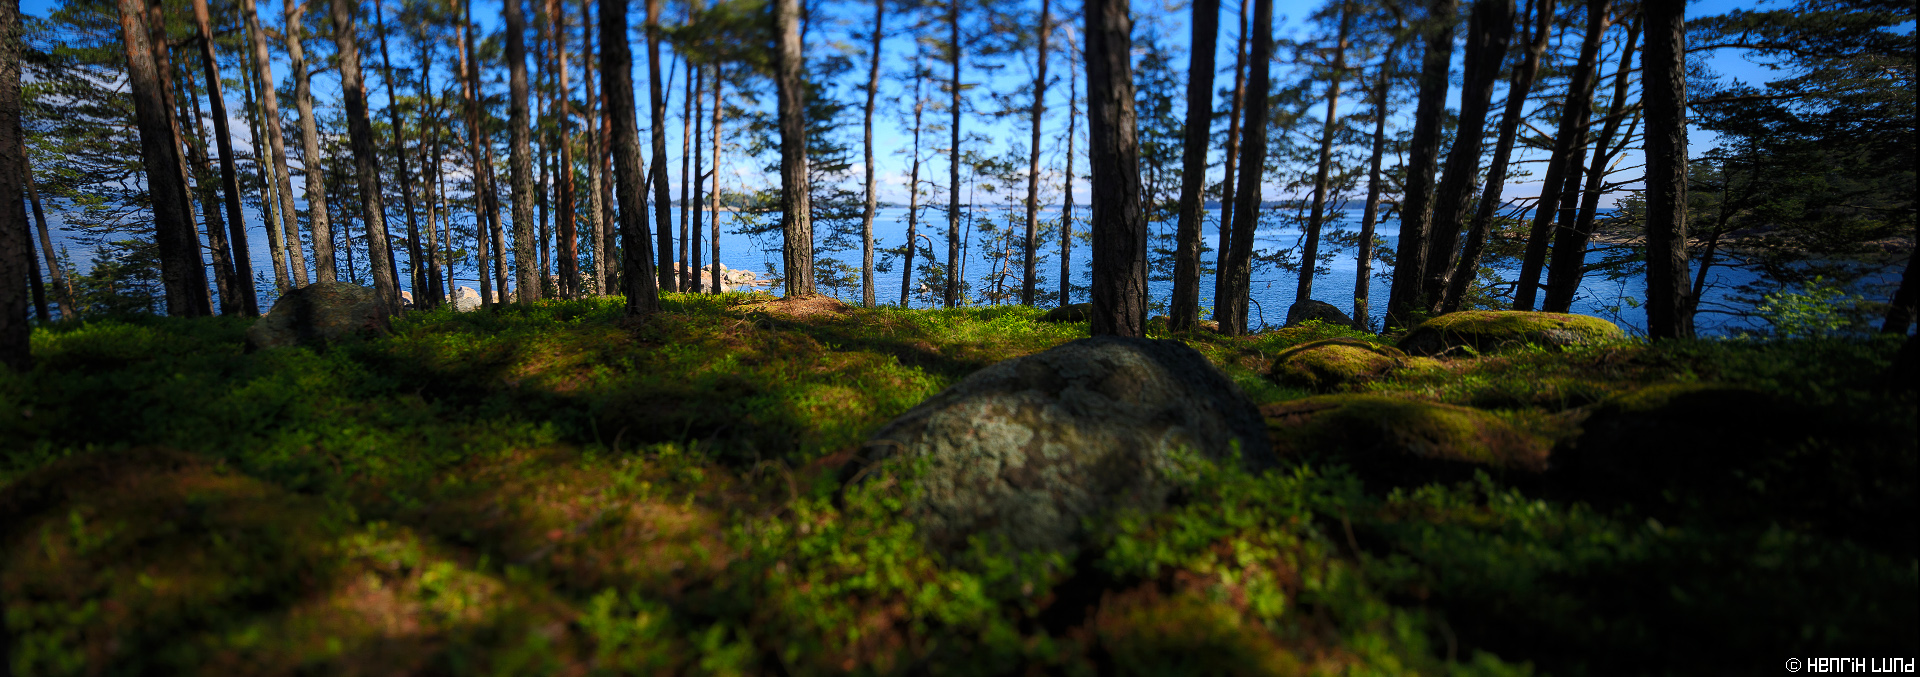 Tilted and shifted sunny midsummerpanorama taken at Bodö in Porvoo archipelago, Finland, June 2015.